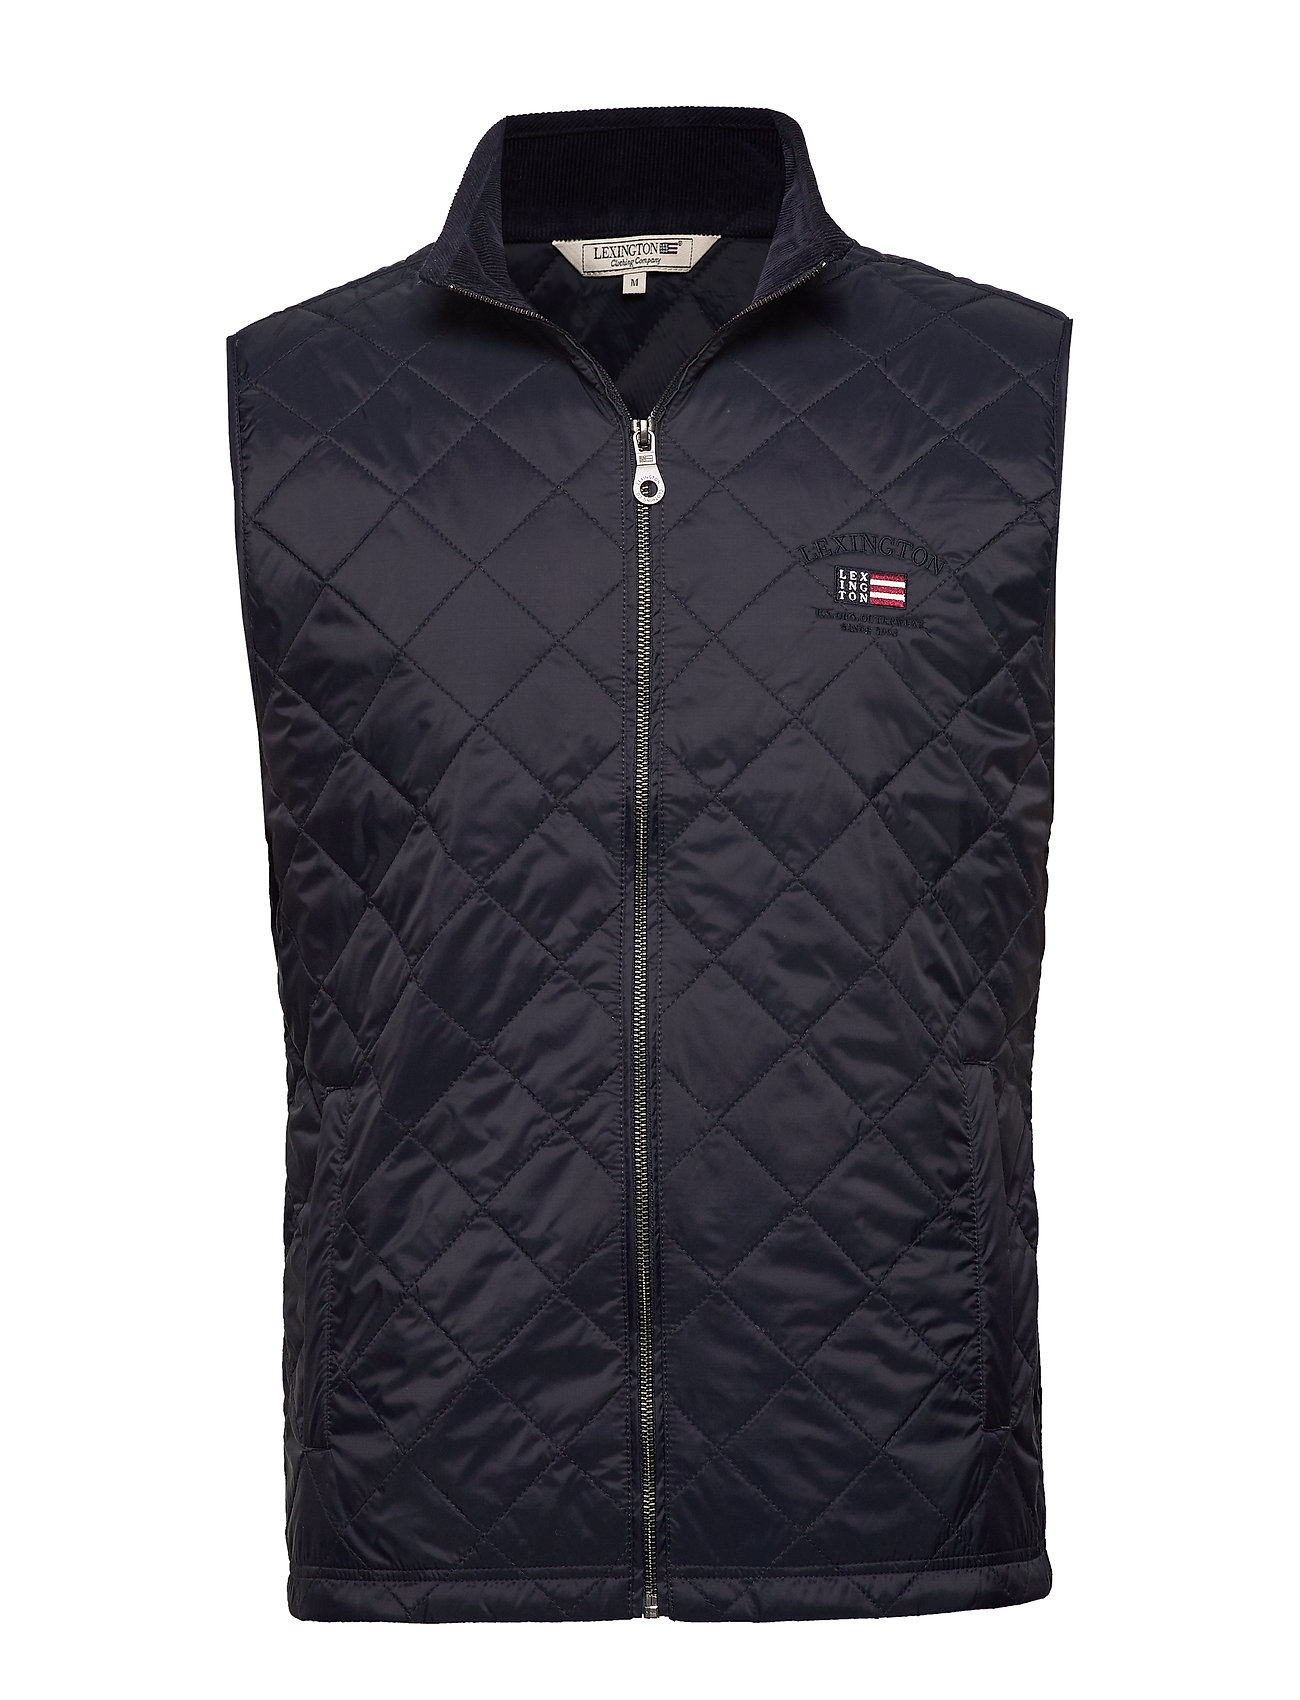 Lexington Clothing Gregory Quilted Vest - DARK BLUE